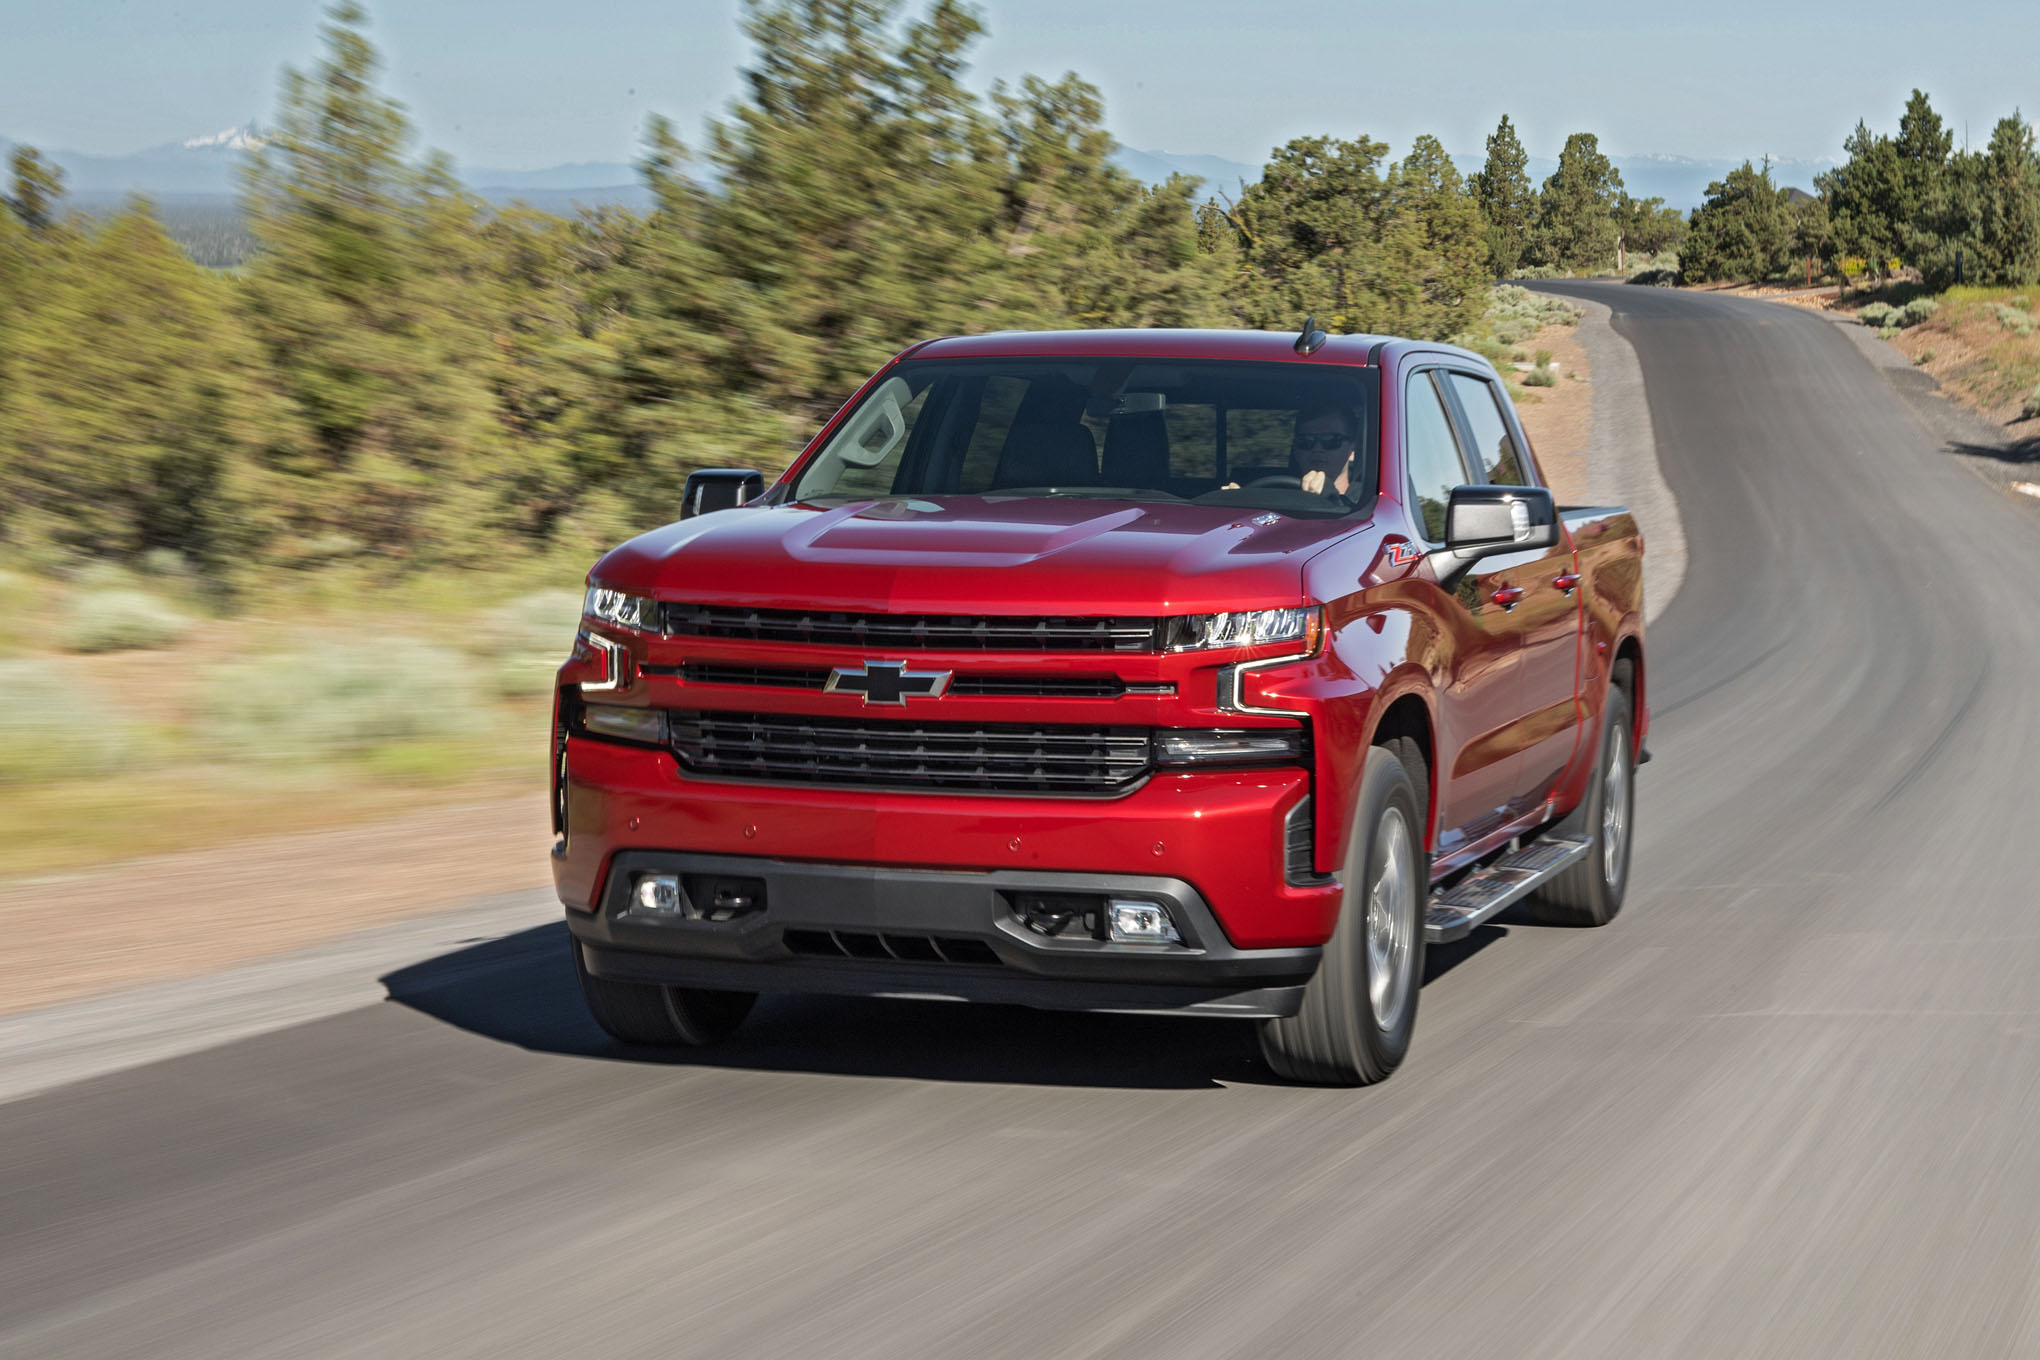 Confirmed Gm All Electric Pickup Truck Will Be On The Road In 2021